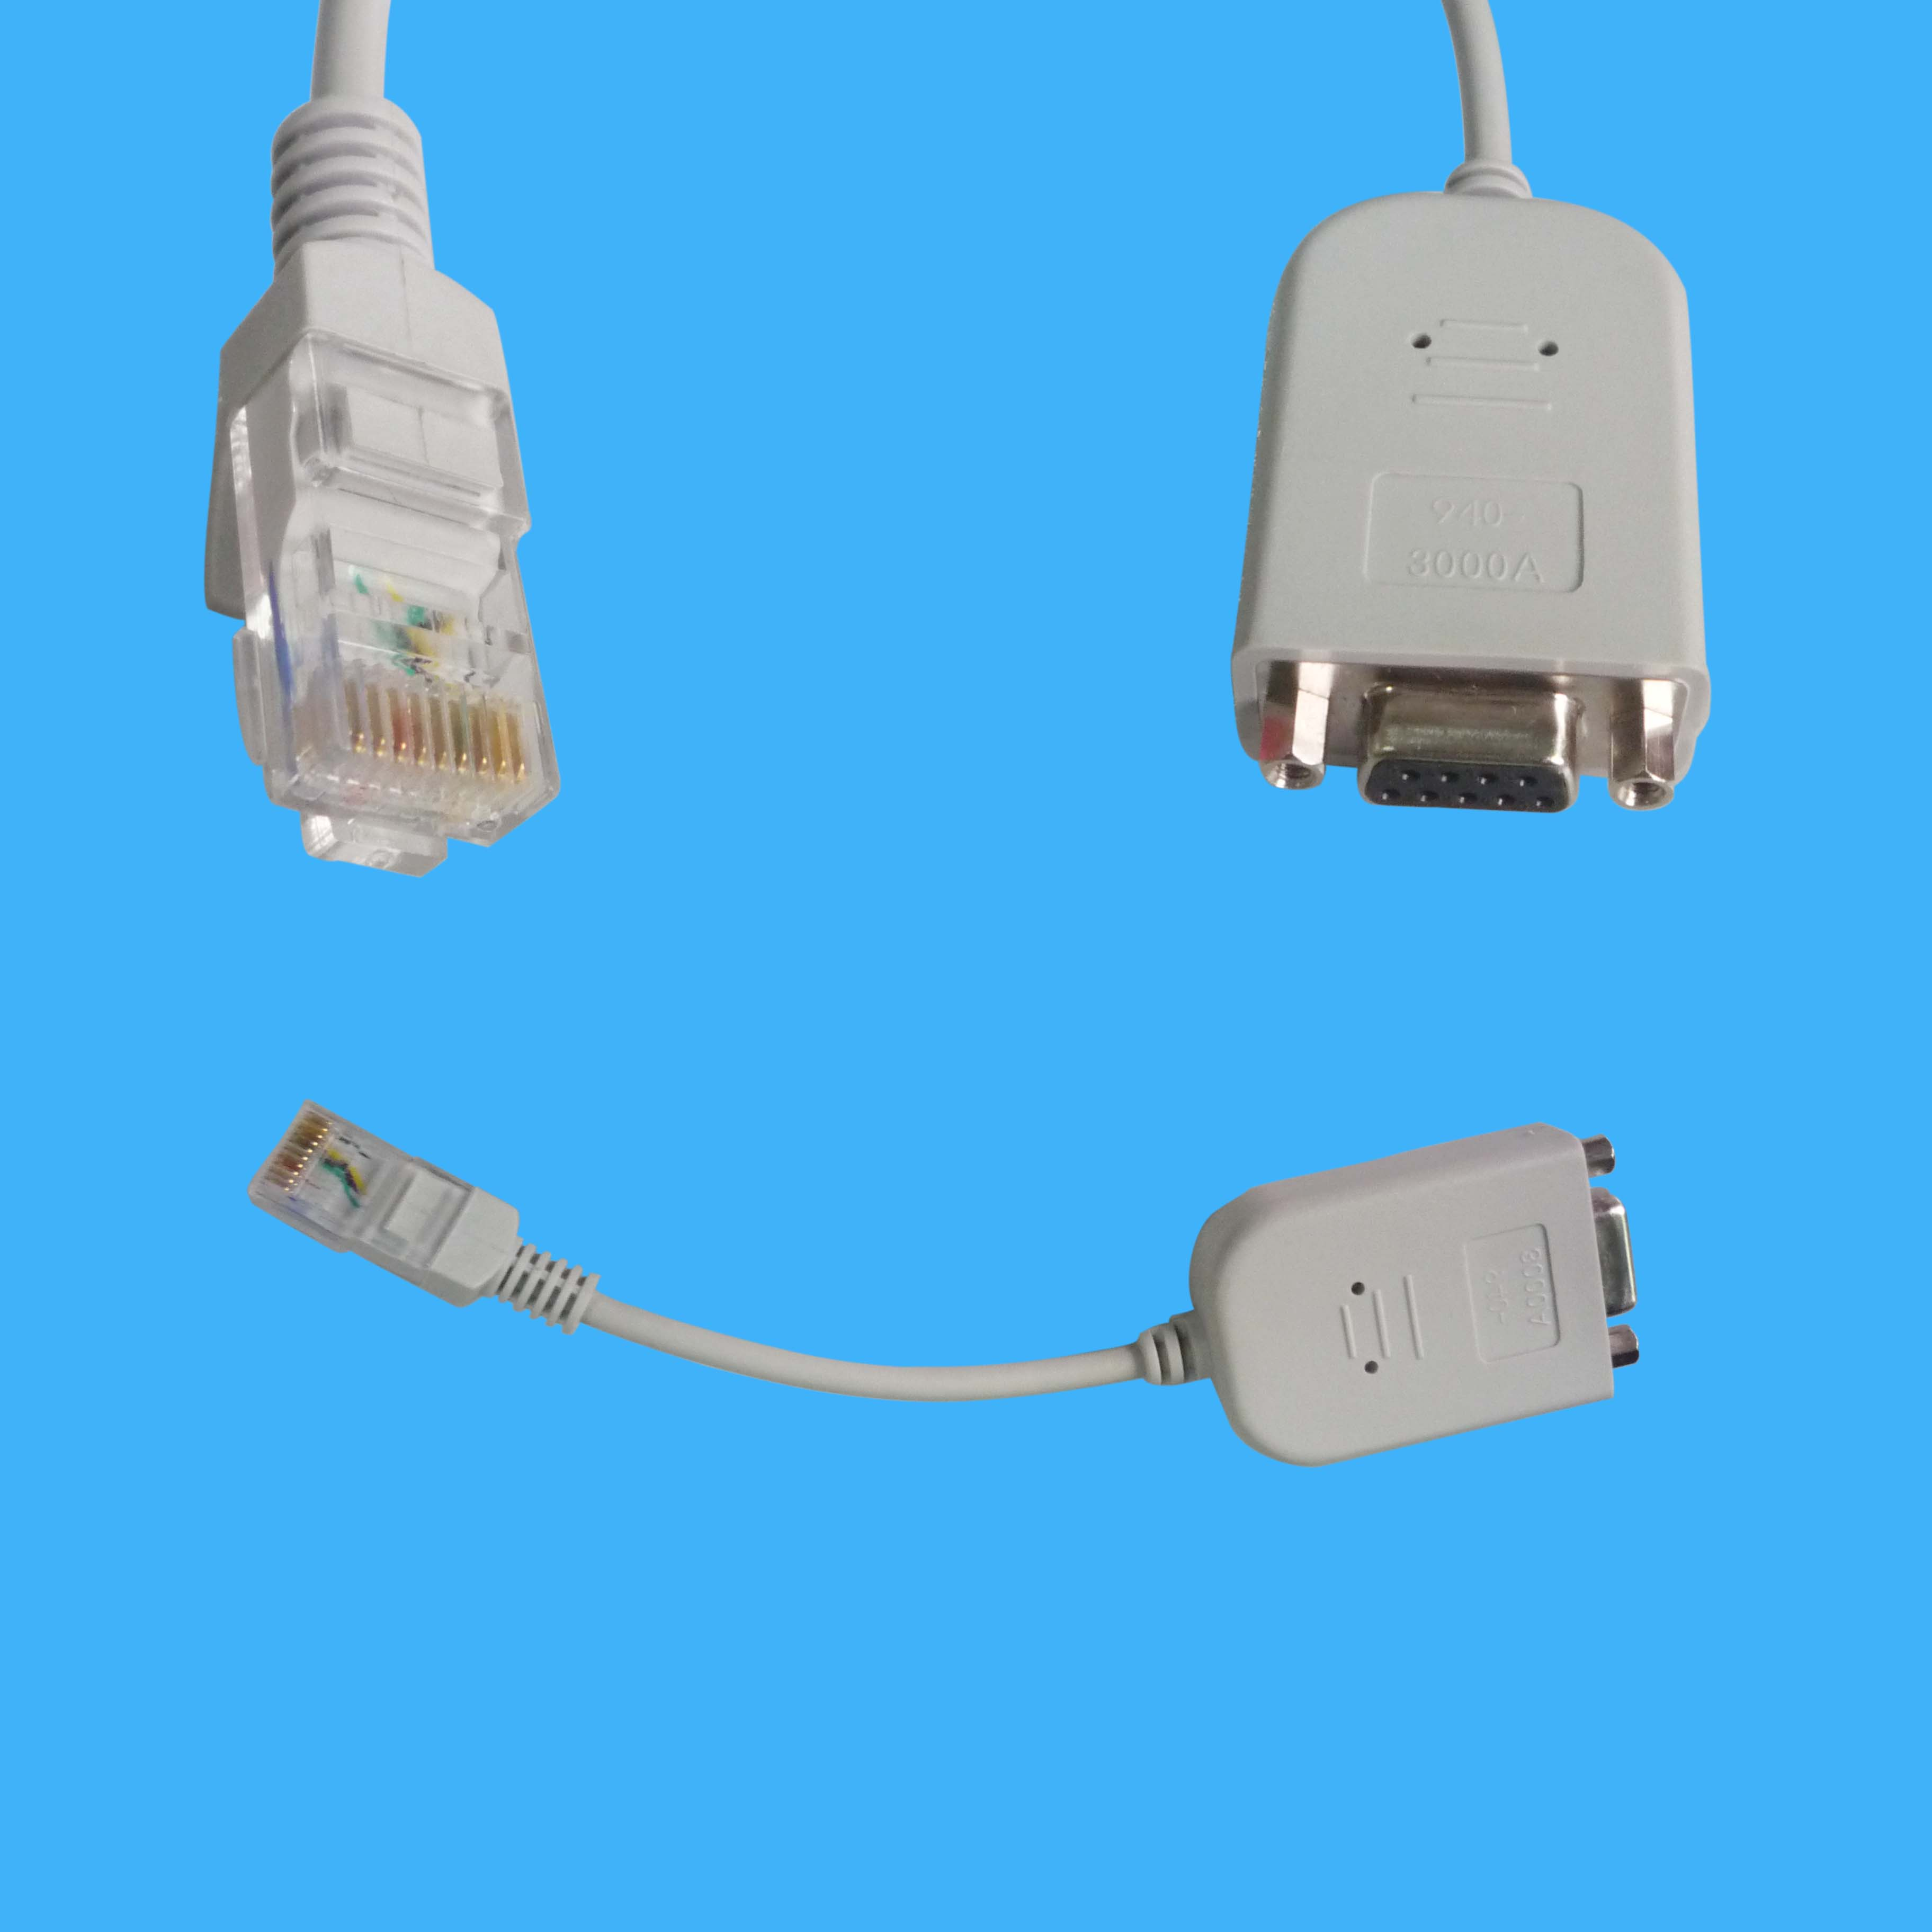 RJ45 cable